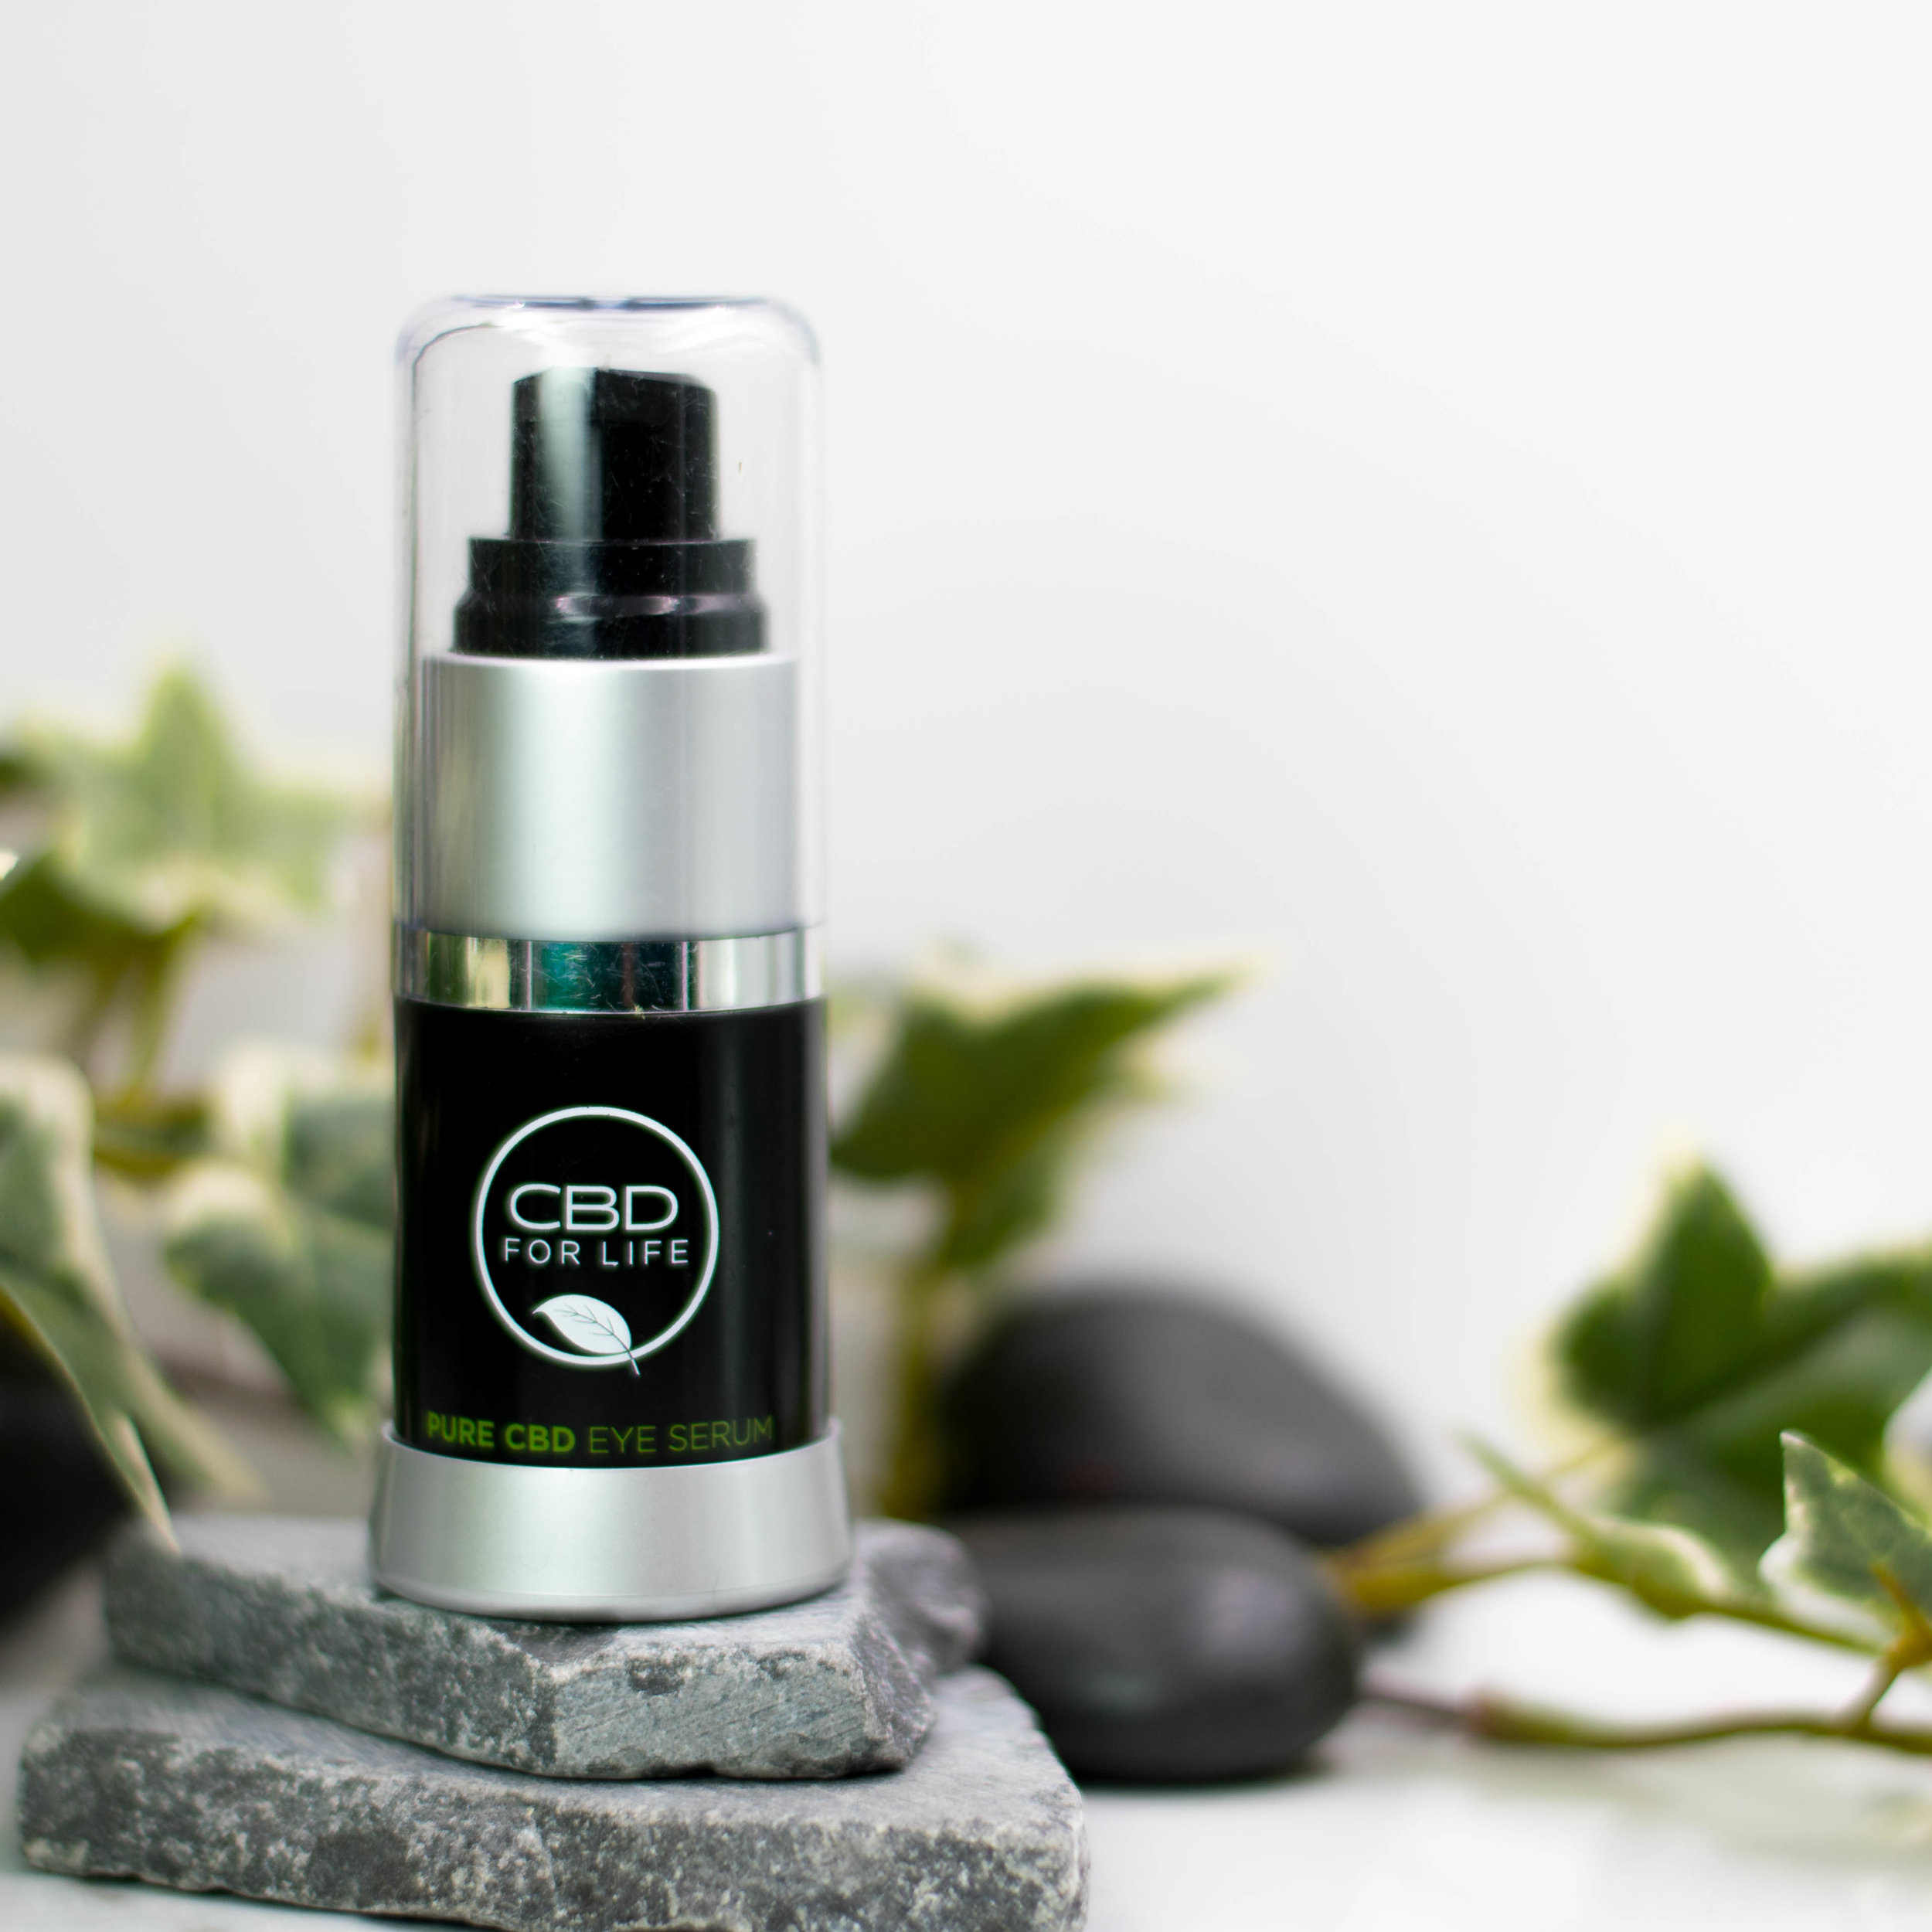 CBD for life is the peak of CBD products and they have a line of supplies that keeps your healthy and on the move.